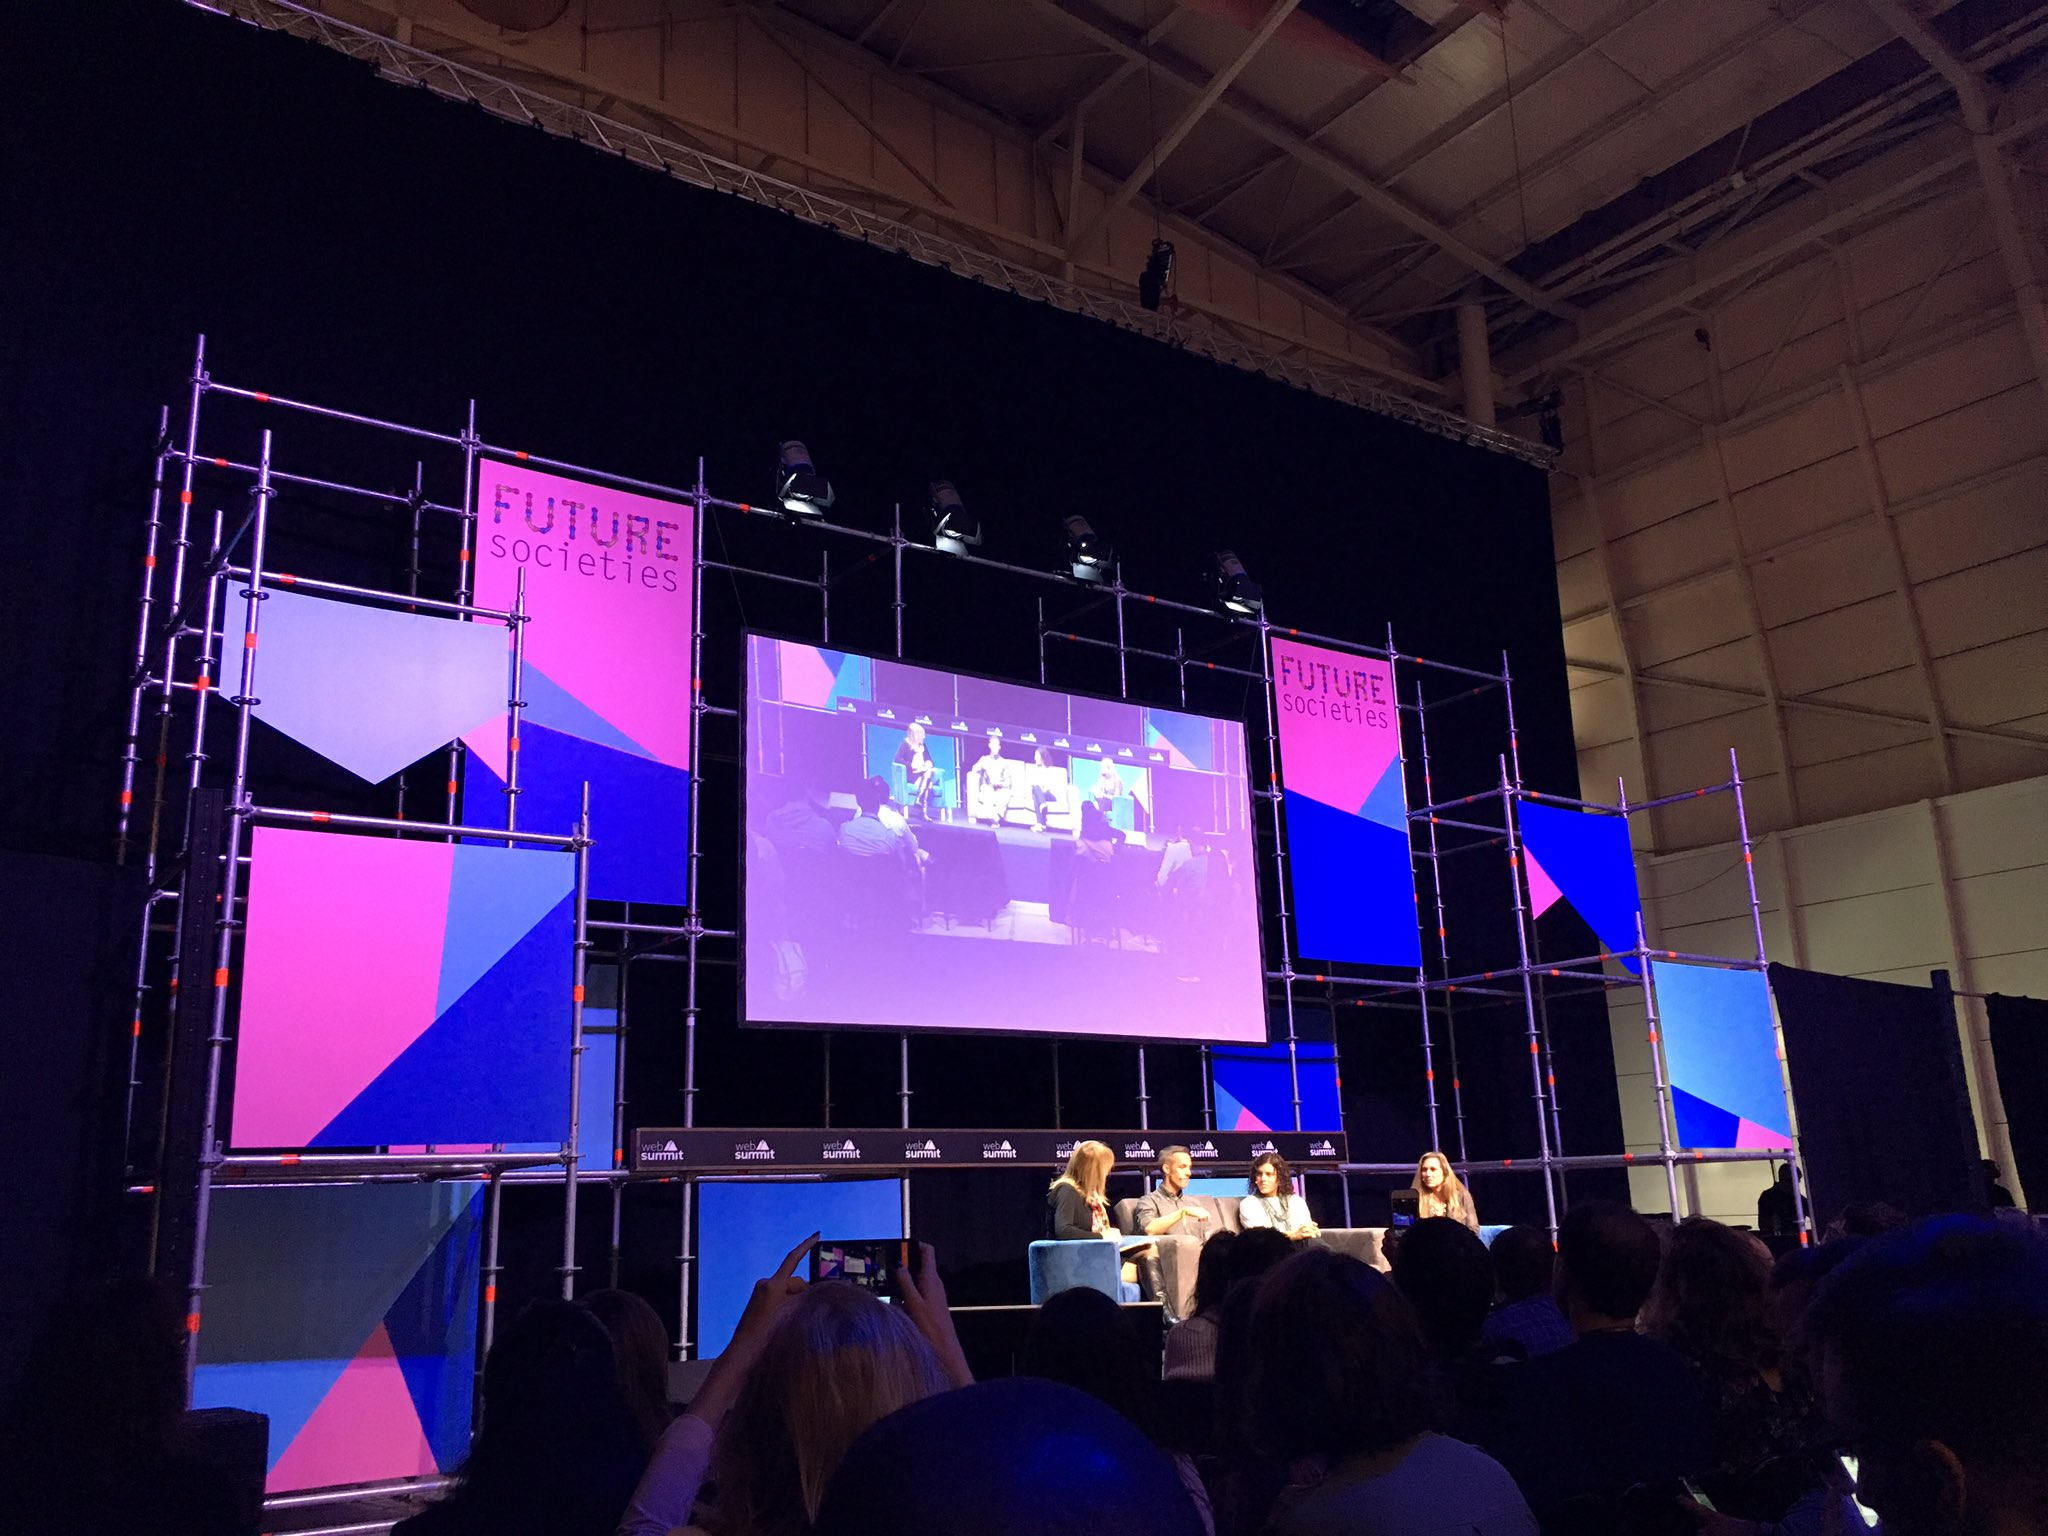 People want to have a purpose and meaning. And that's powerful! Scale up, give back! #WebSummit #FutureSocieties https://t.co/0QnPaEEp1R